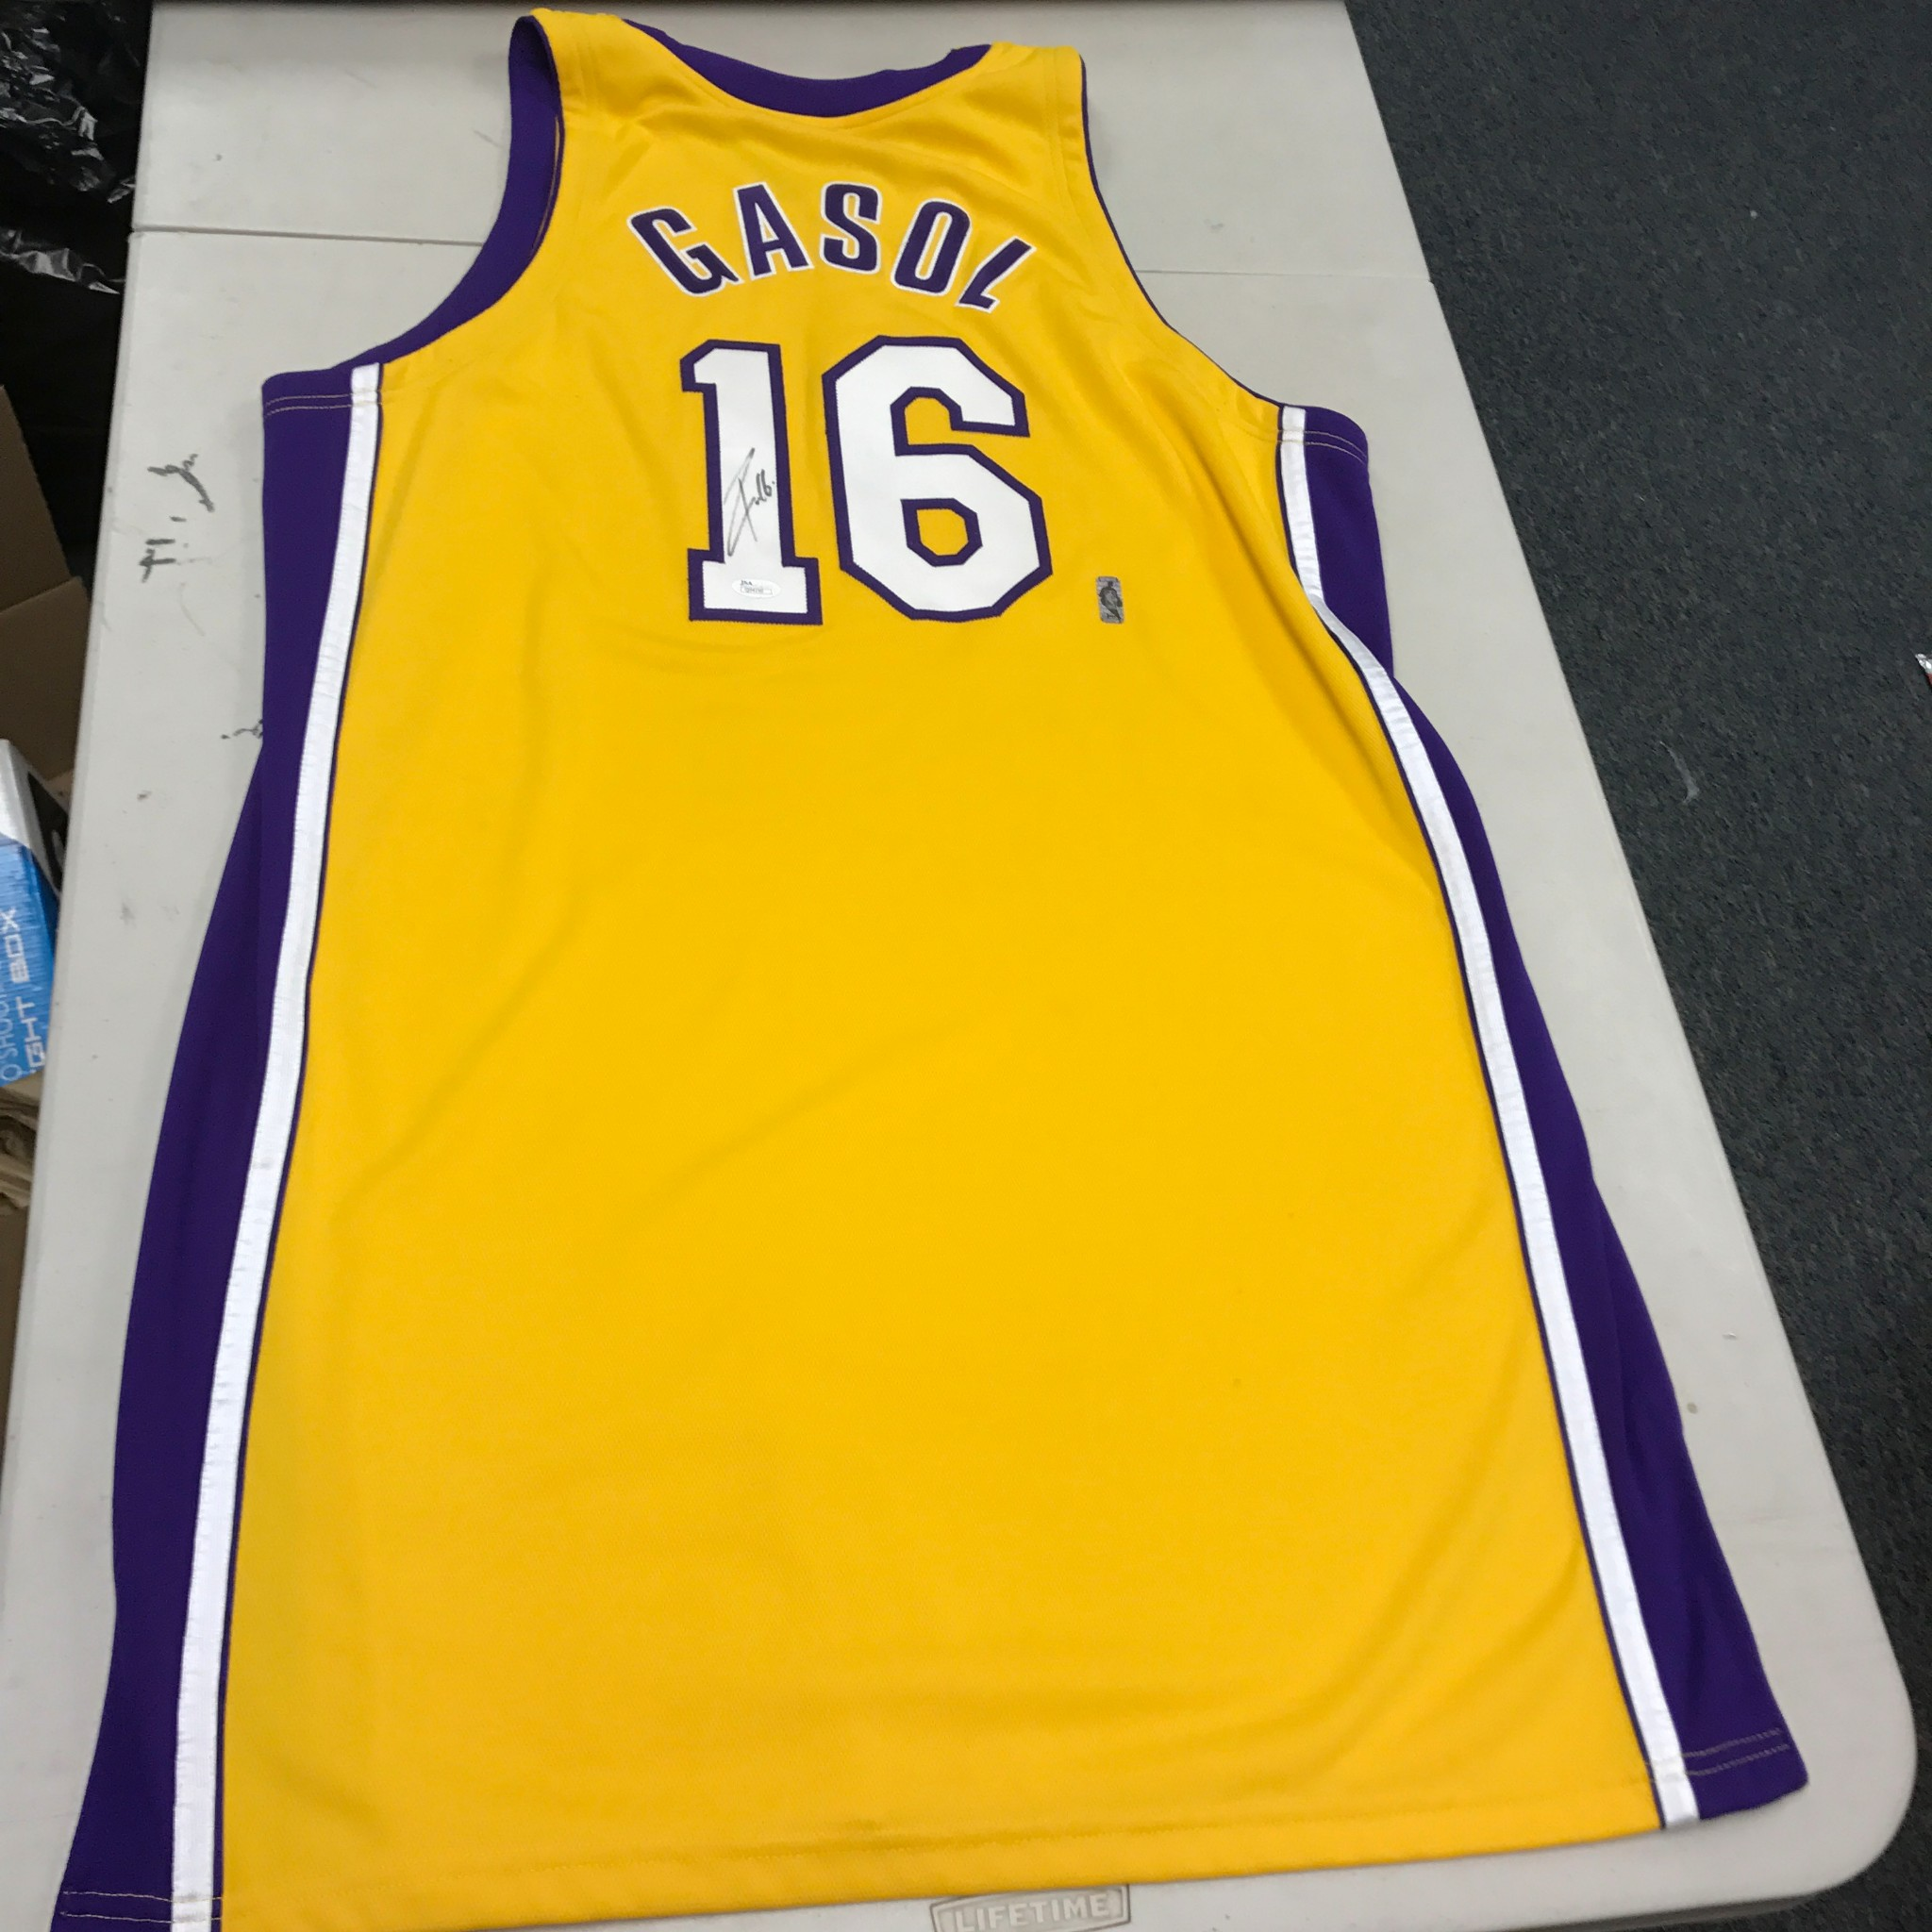 35a328cd6 2008-09 Pau Gasol Game Used Signed Los Angeles Lakers Jersey JSA COA ...